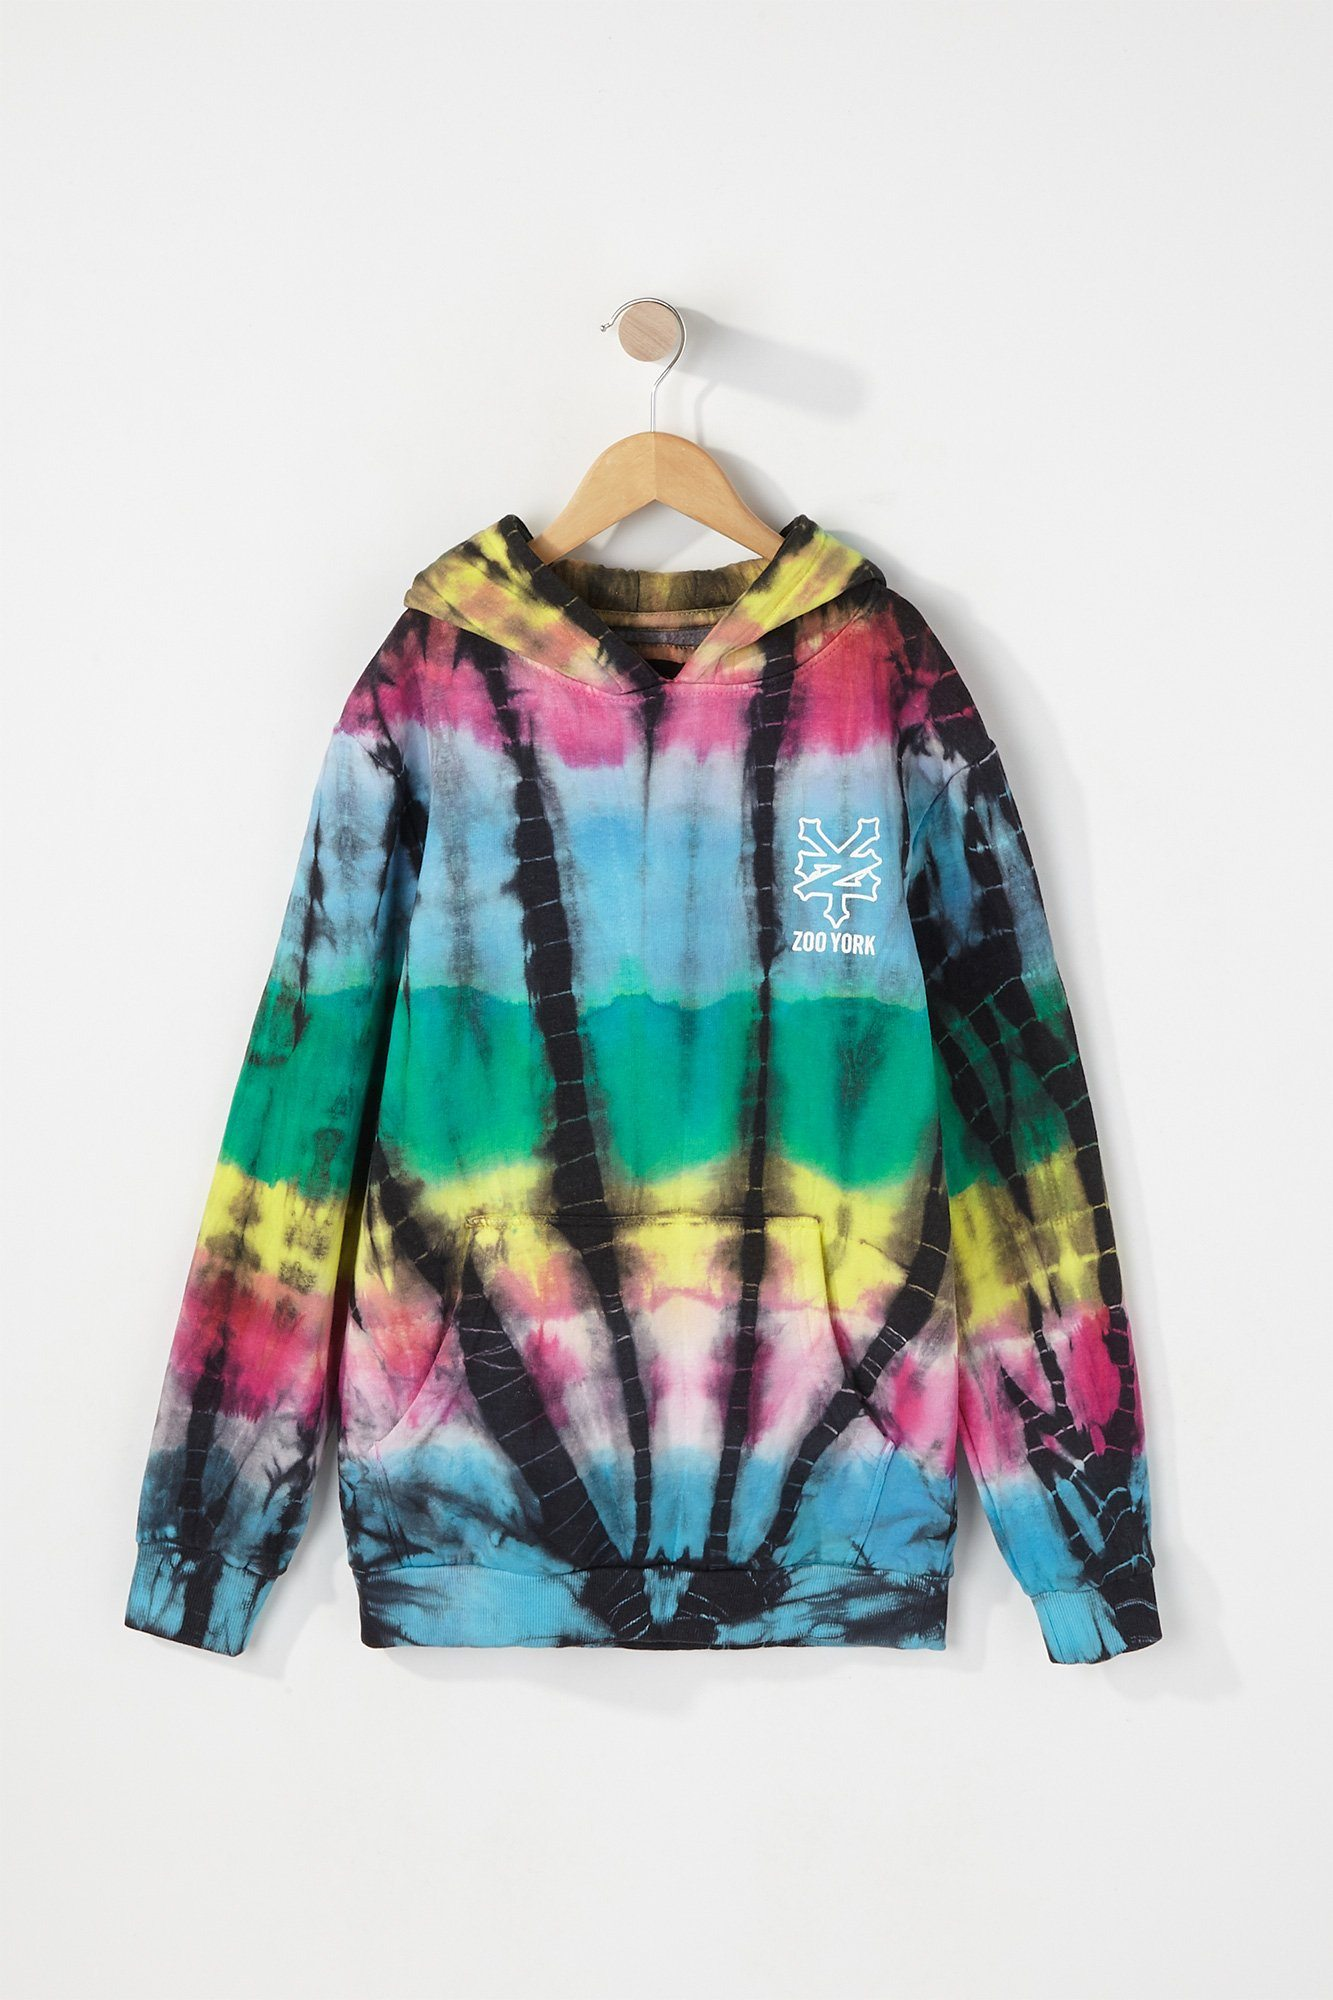 5226134f1 TIE DYE HOODIES — 40% OFF + more DEALS! - West 49 Email Archive